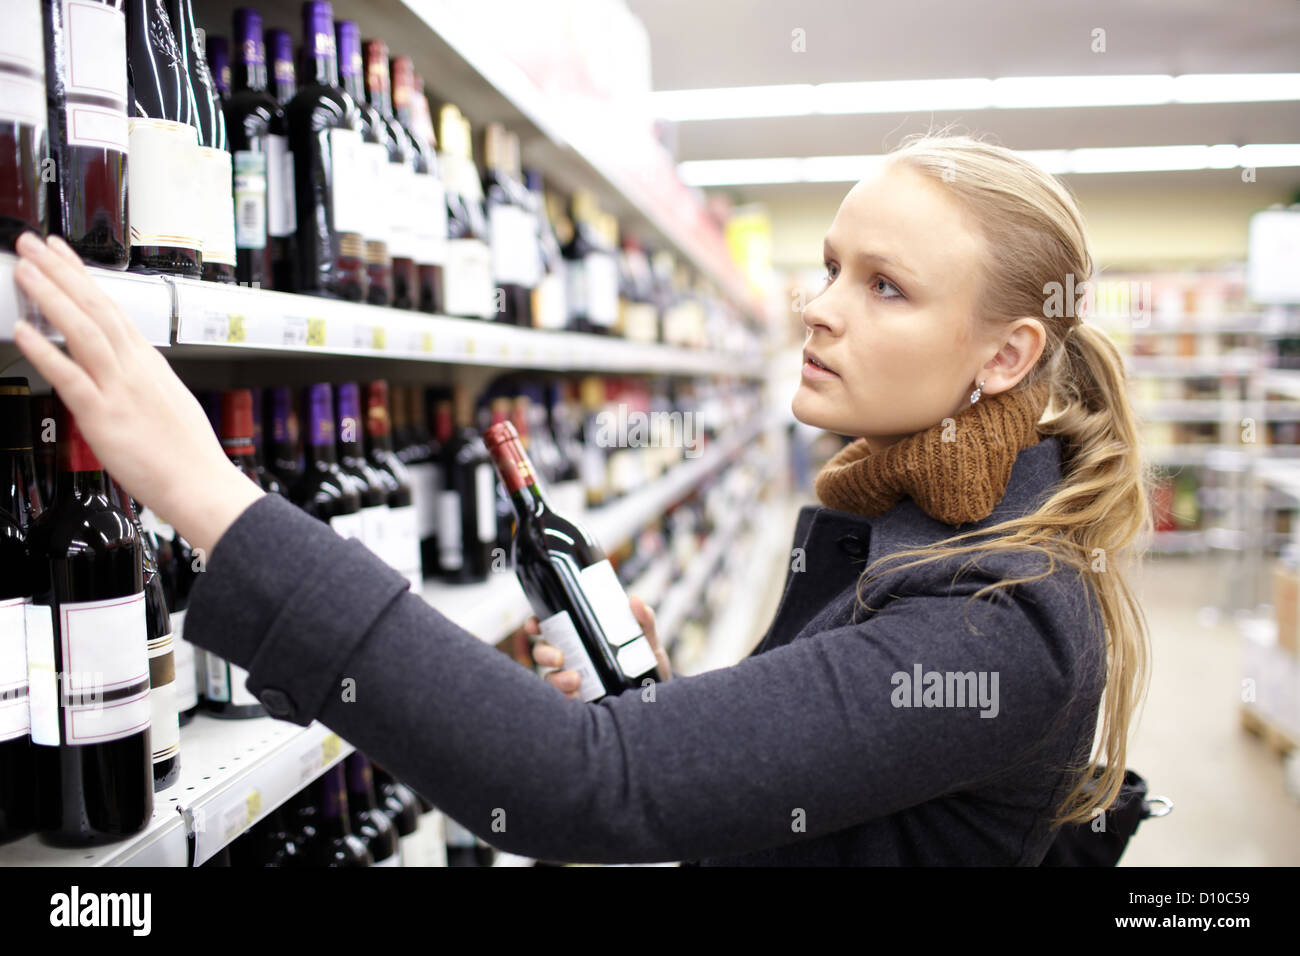 Young woman is choosing wine in the supermarket. - Stock Image